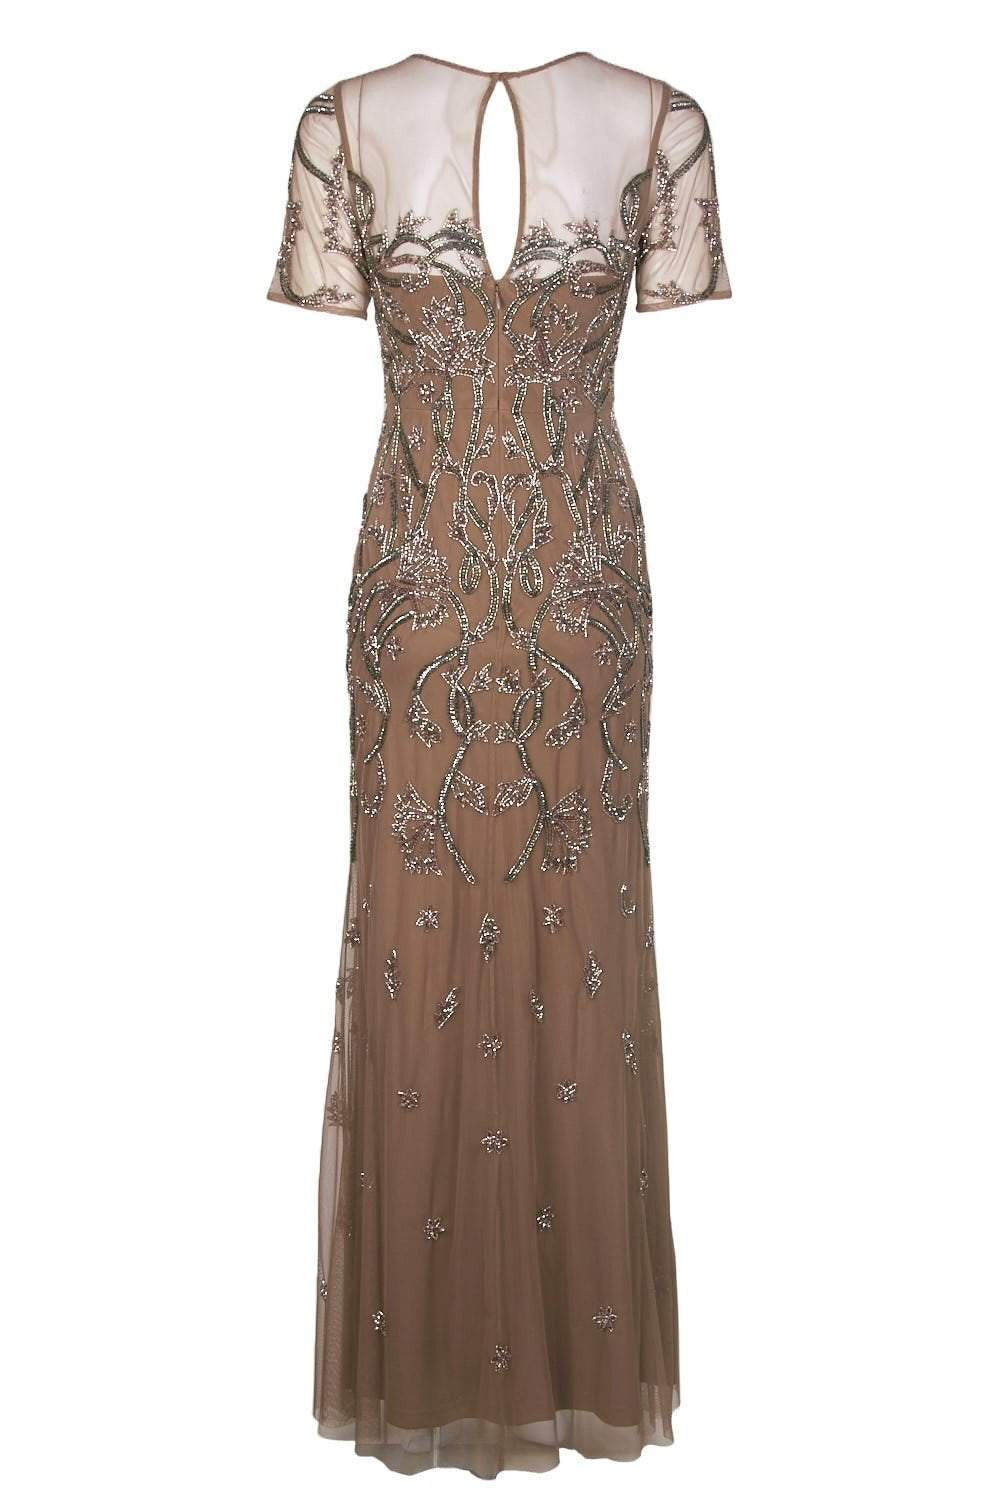 Aidan Mattox - MD1E202875 Embellished Illusion Jewel Sheath Dress In Brown